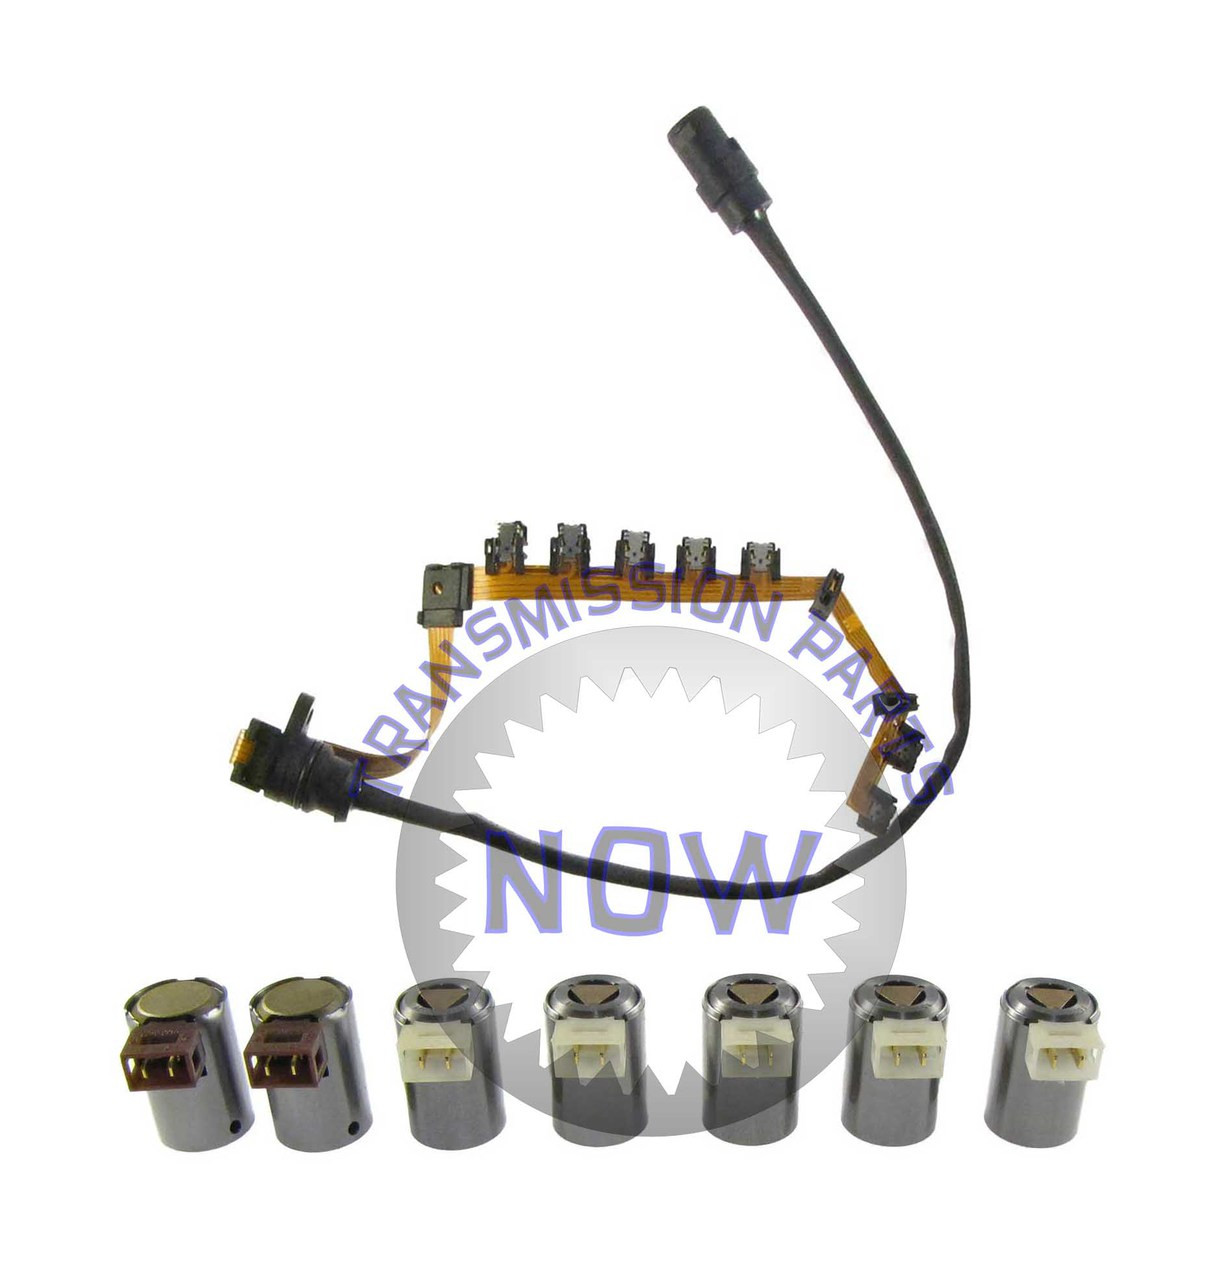 oe type wiring harness and 7 piece solenoid set transmission parts now 4l80e internal wiring harness 5r55e transmission wiring harness #19